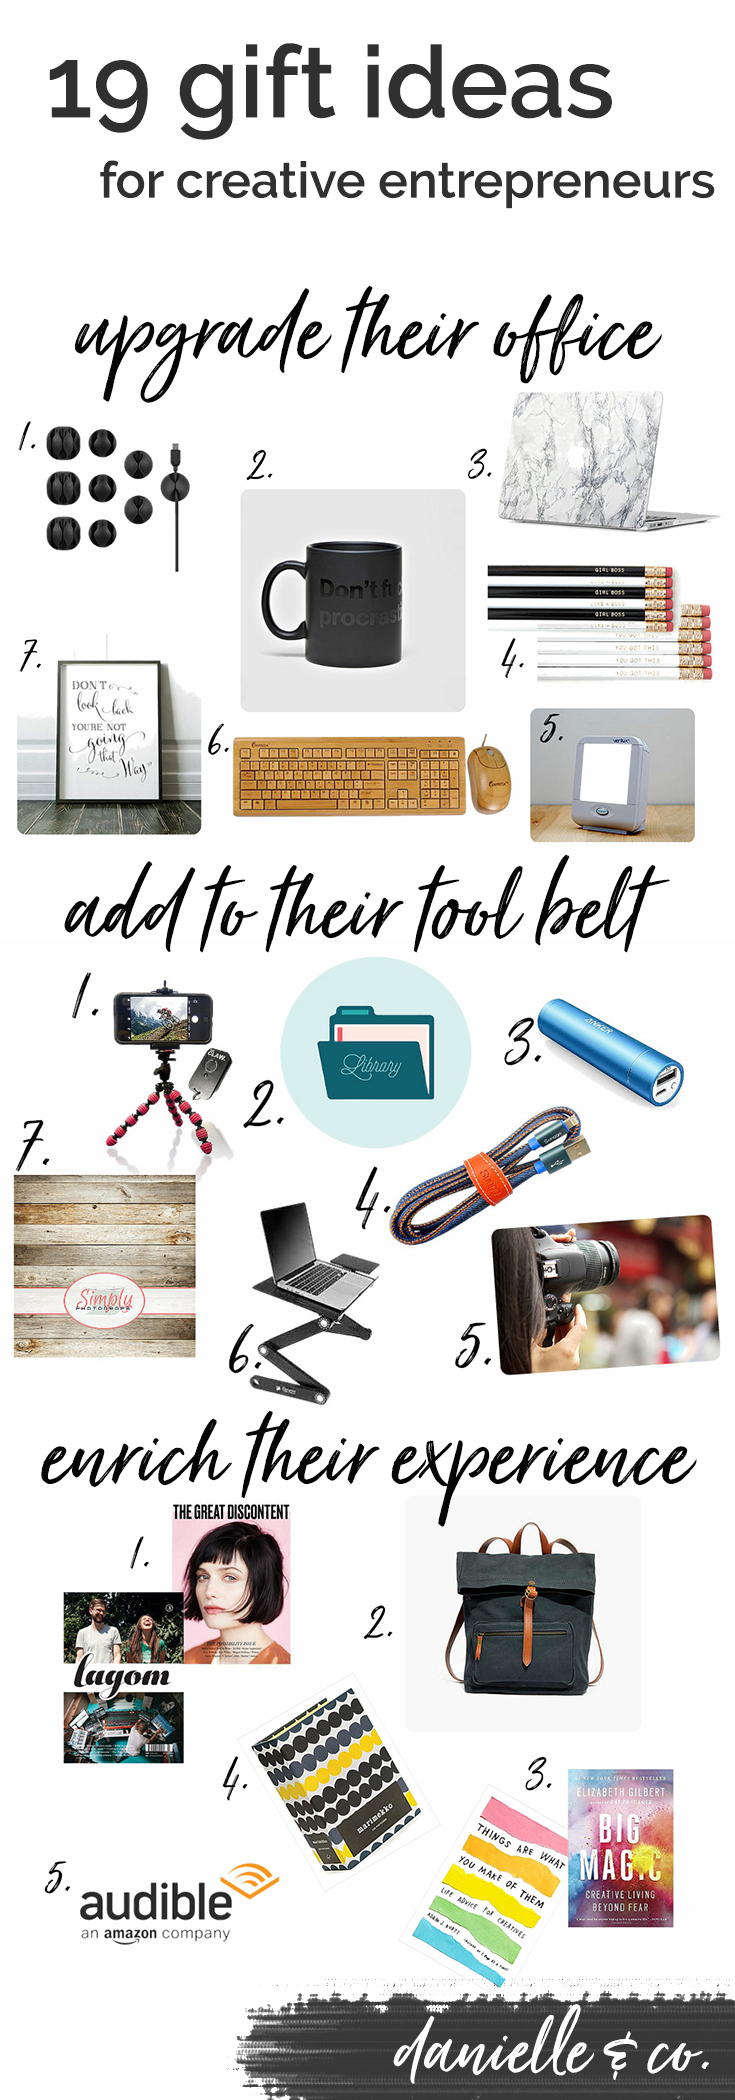 Gift ideas for creative entrepreneurs; how to add to their tool belt, upgrade their office, and enrich their experience this holiday season! From danielle & co.